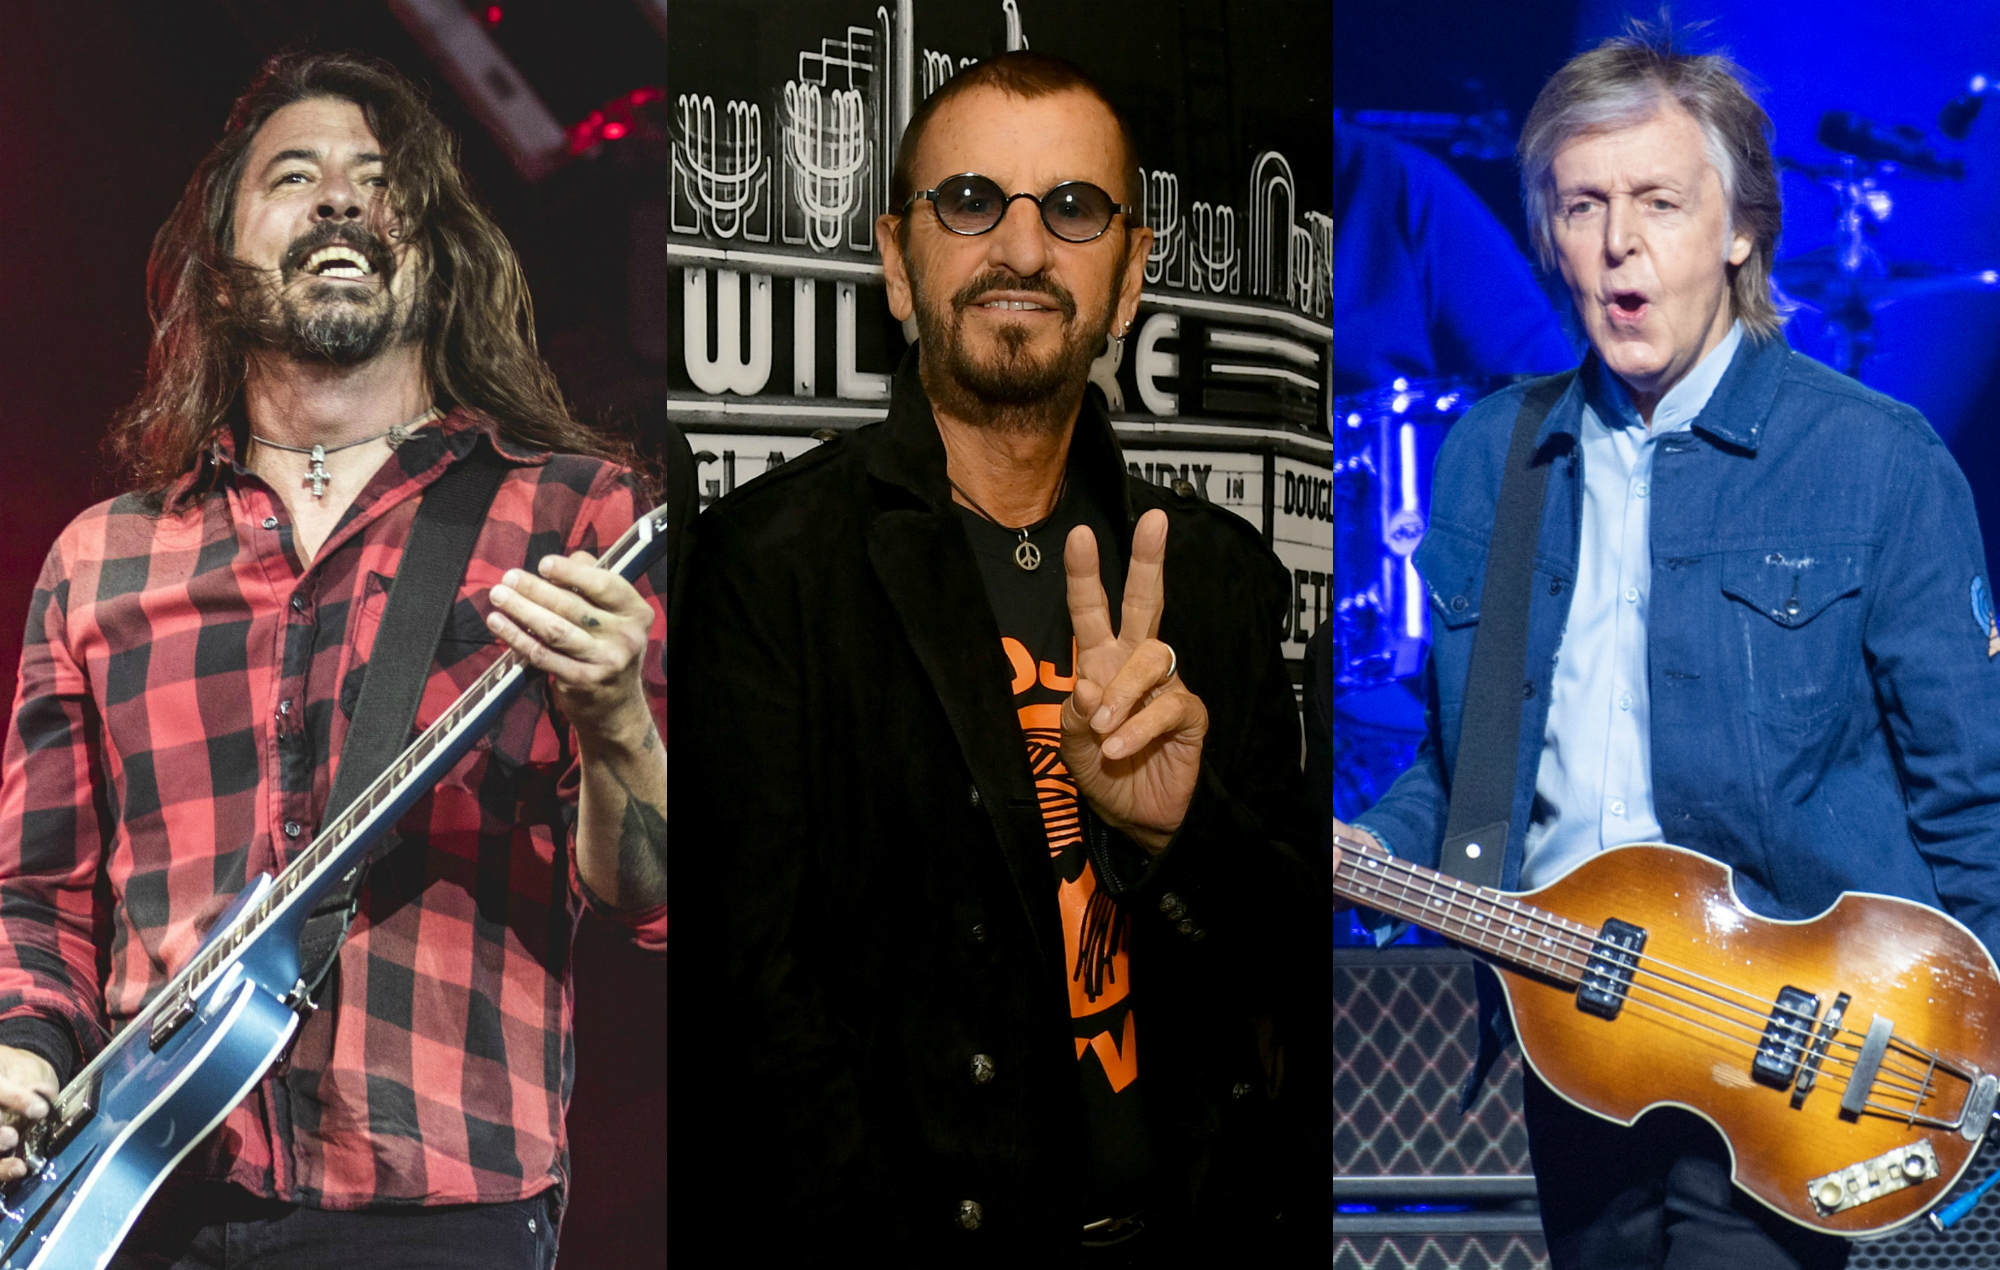 Ringo Starr announces 'Zoom In' EP featuring Paul McCartney and Dave Grohl